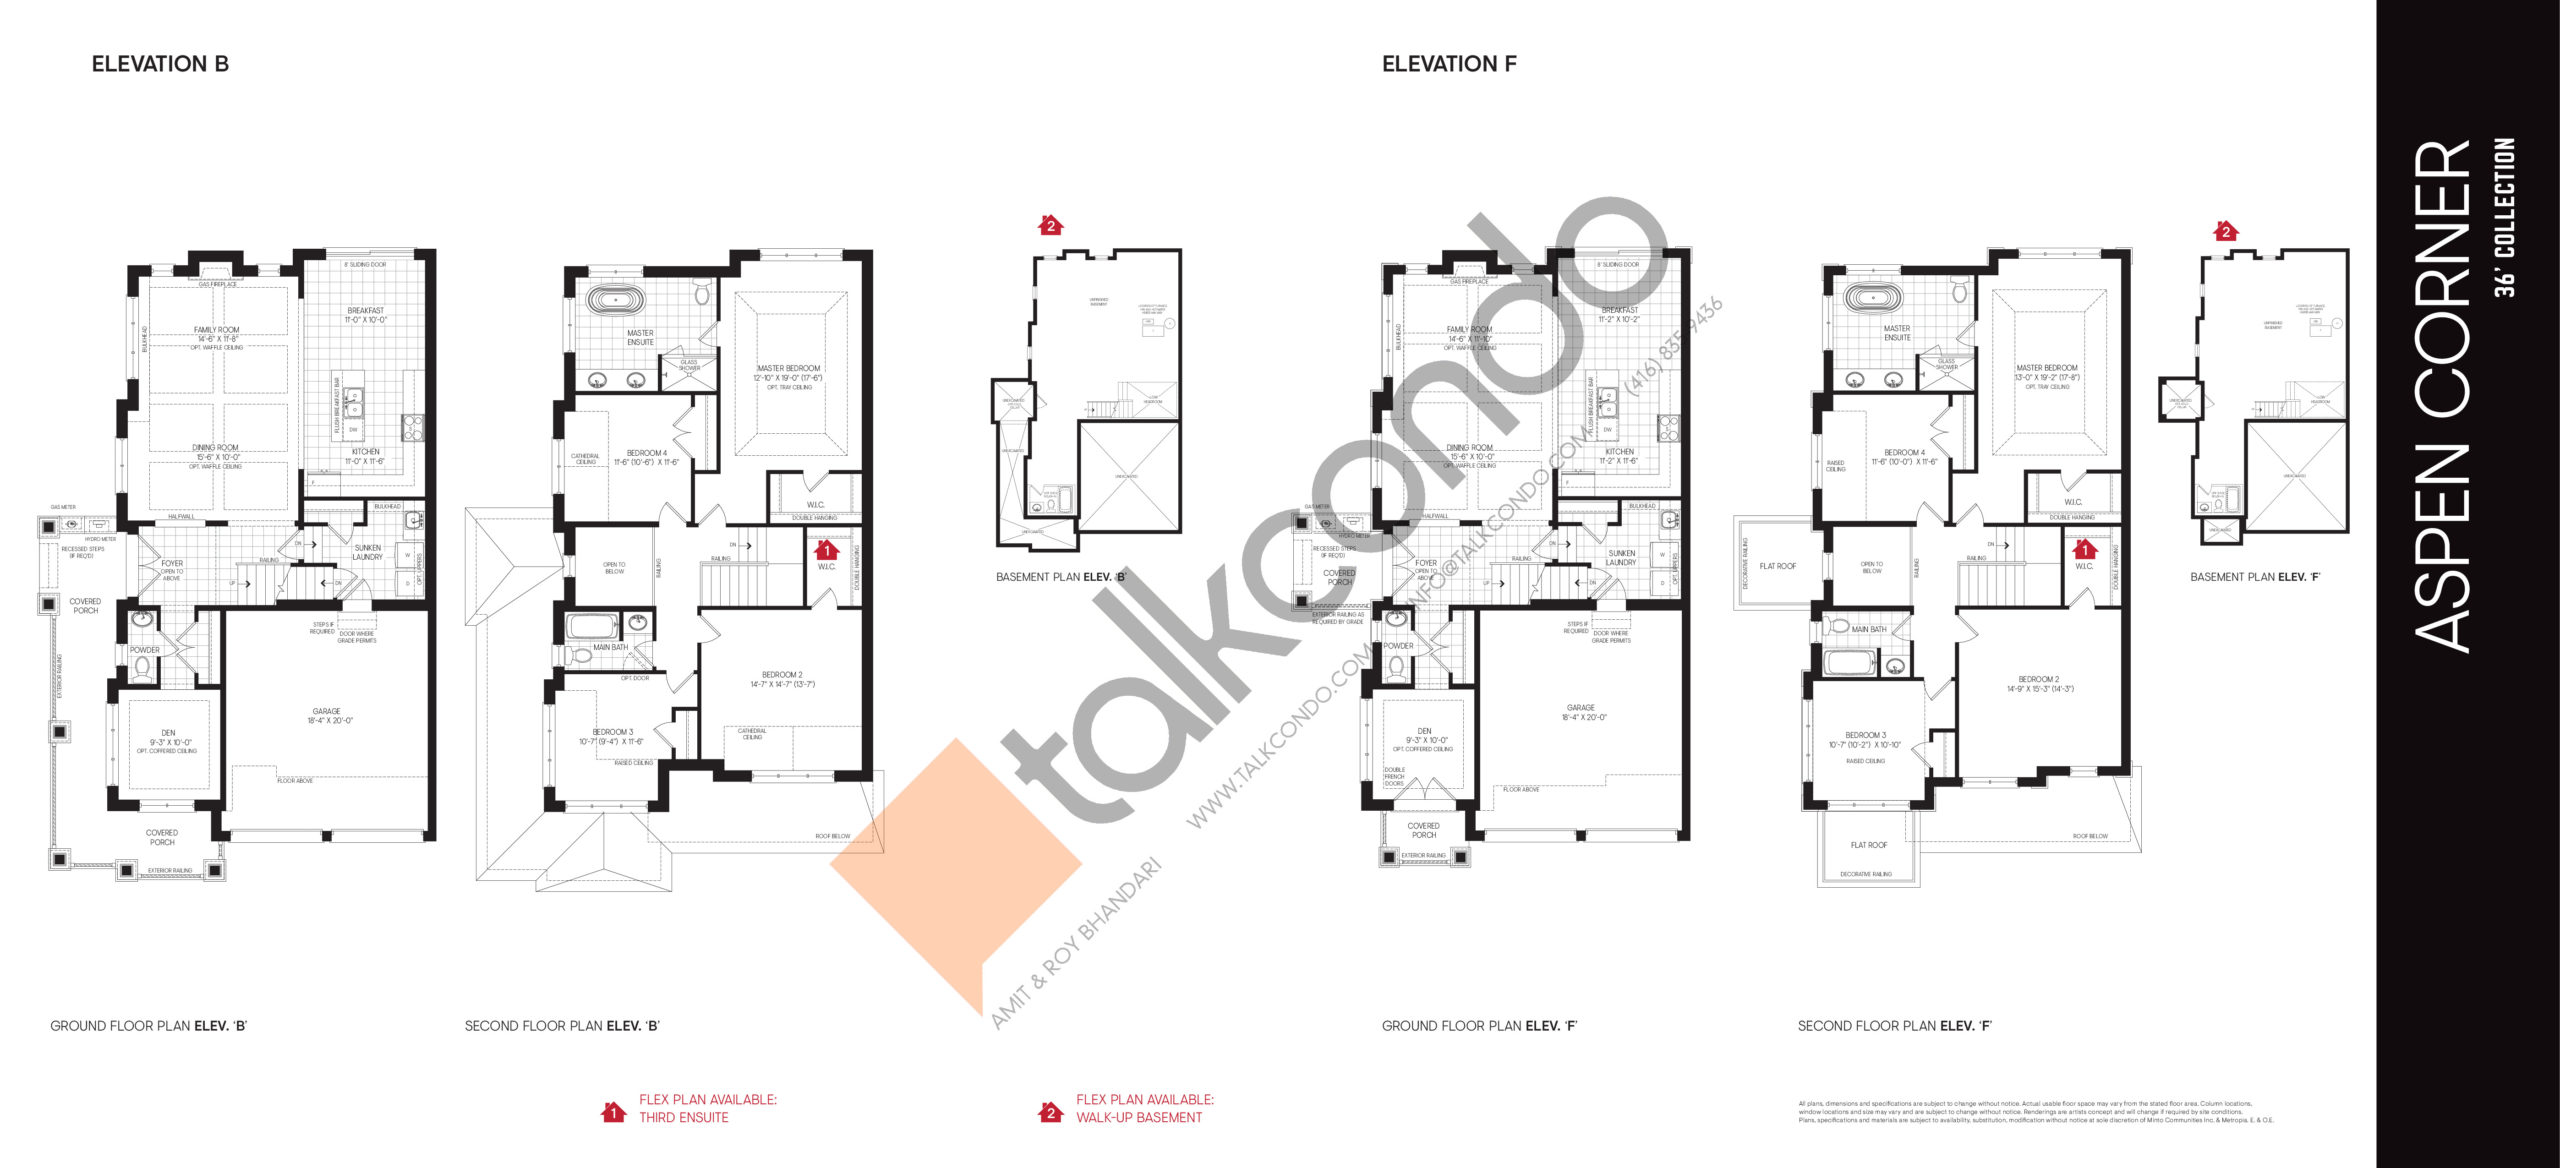 Aspen Corner Elev B | Elev F - 36' Collection Floor Plan at Union Village - 2499 sq.ft